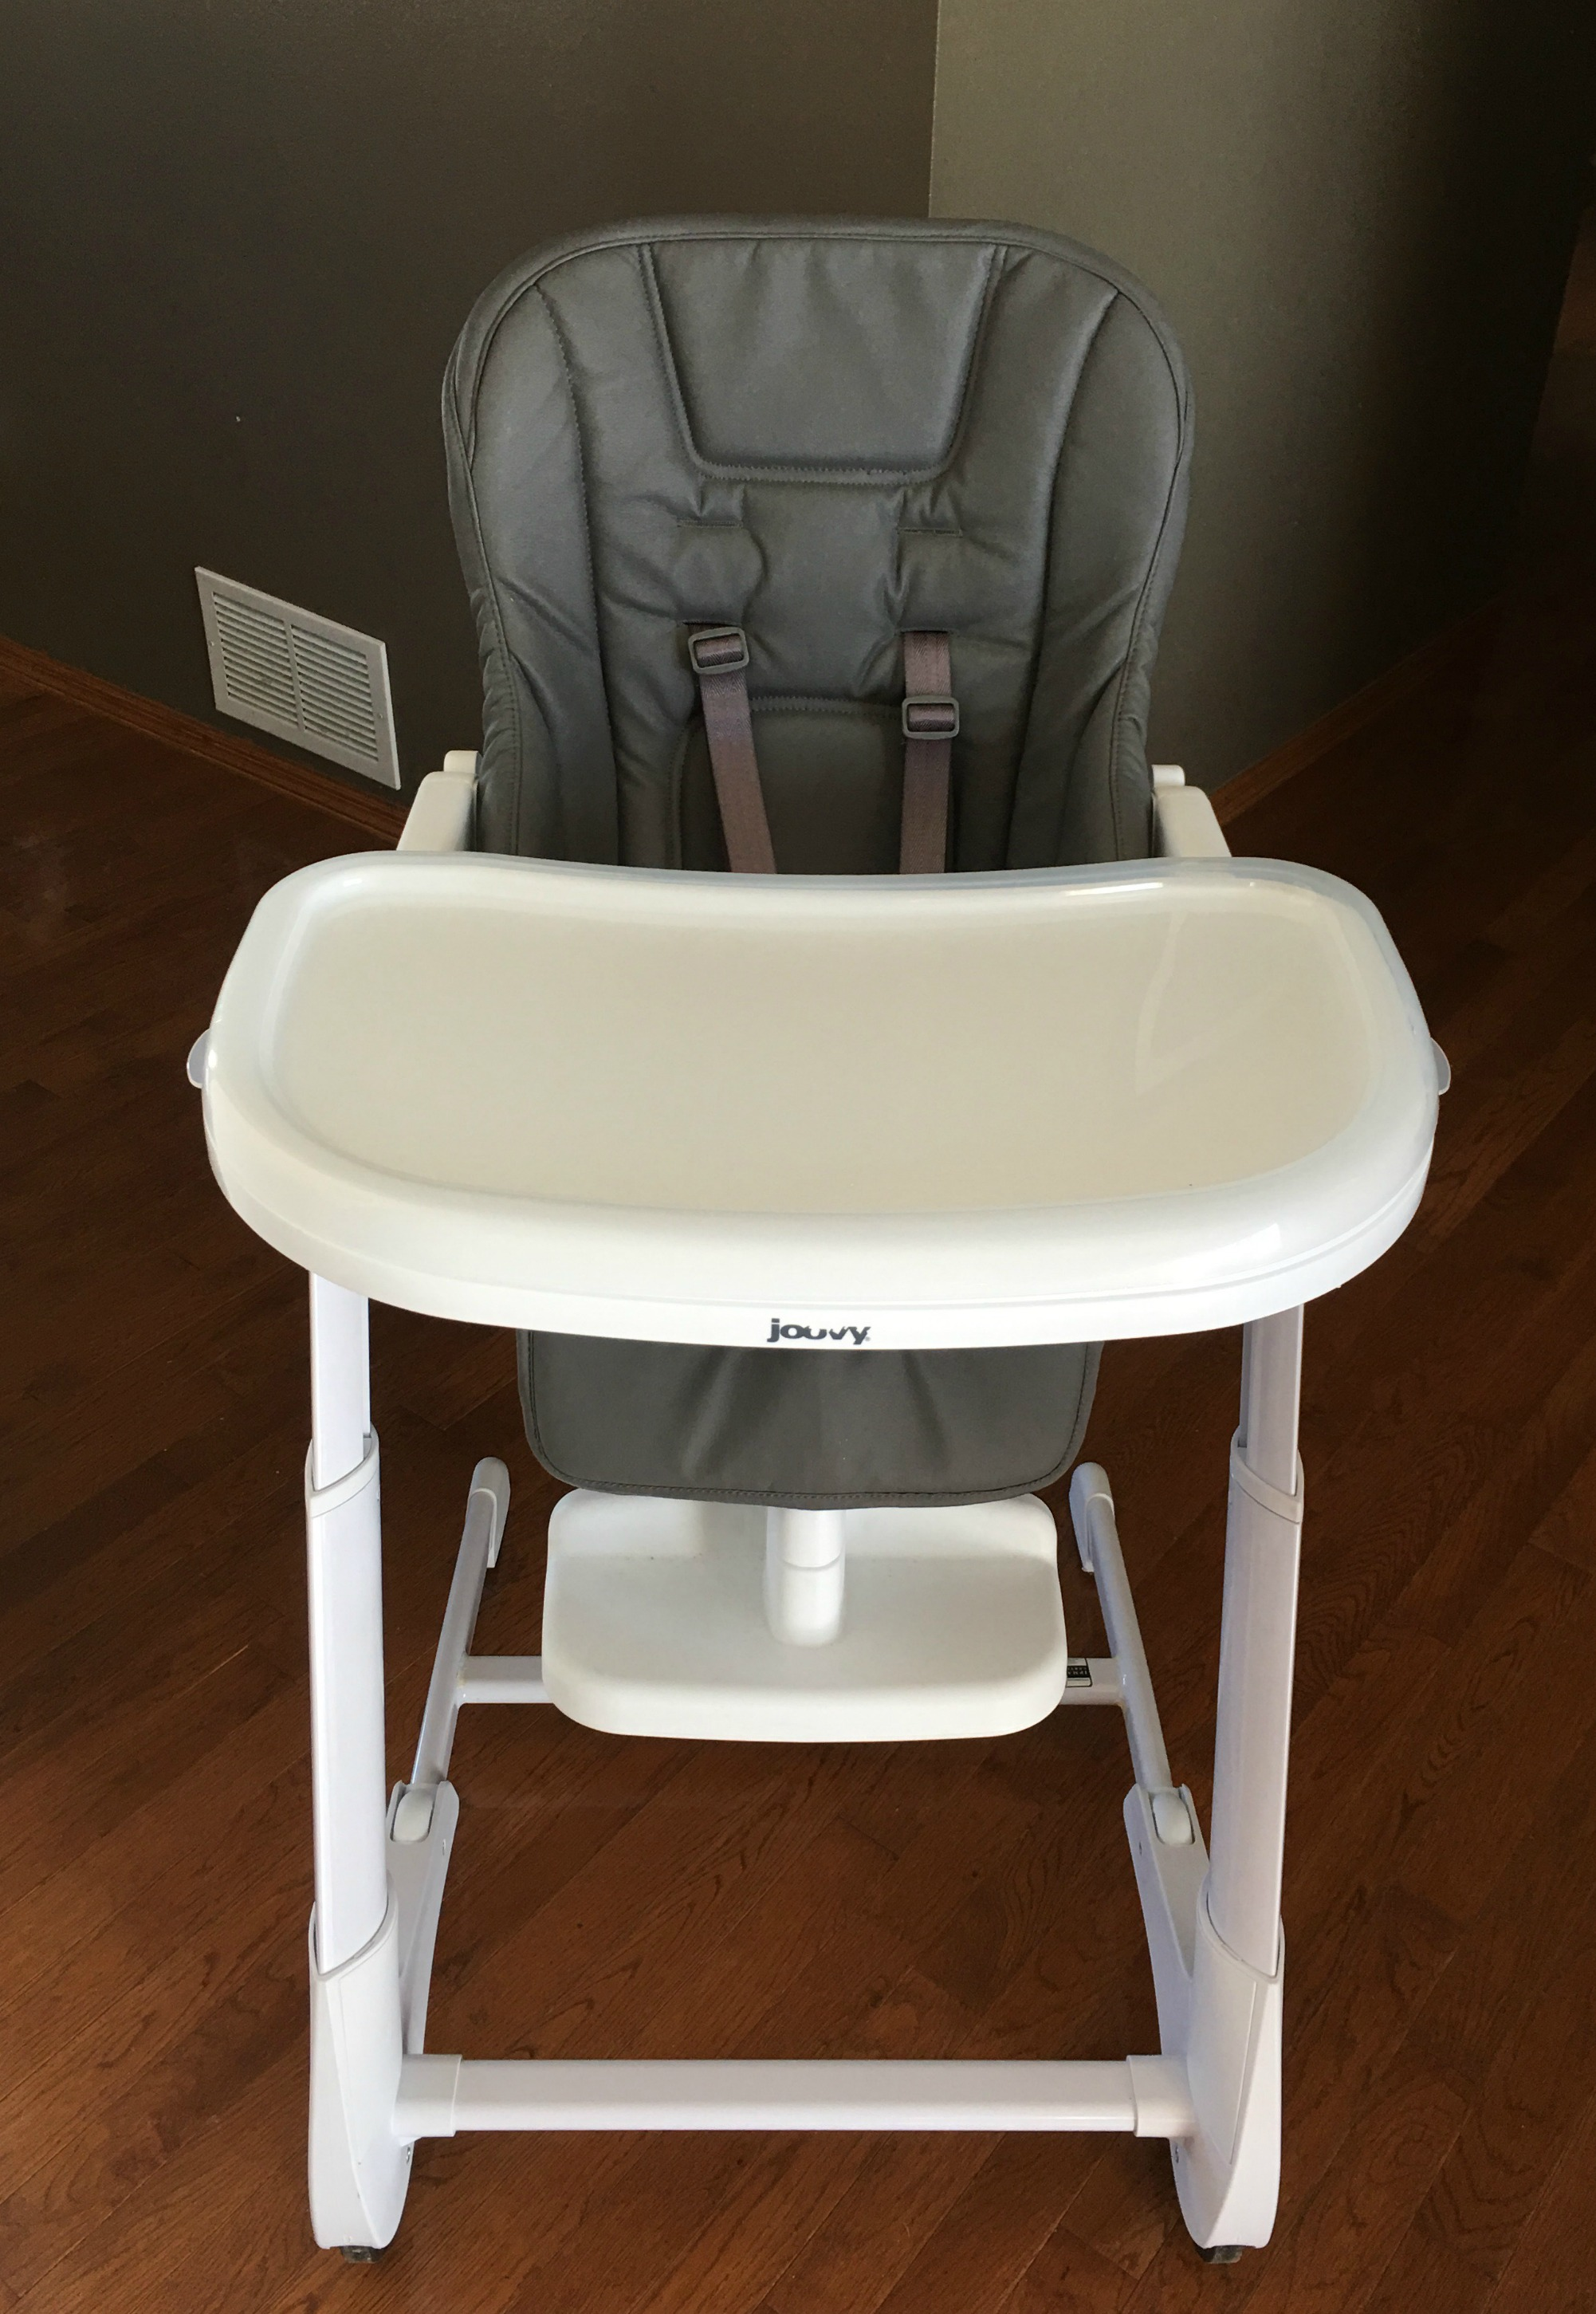 table high chair reviews office jack joovy foodoo review momma in flip flops for this i want to point out you some of the great features that make stand among others